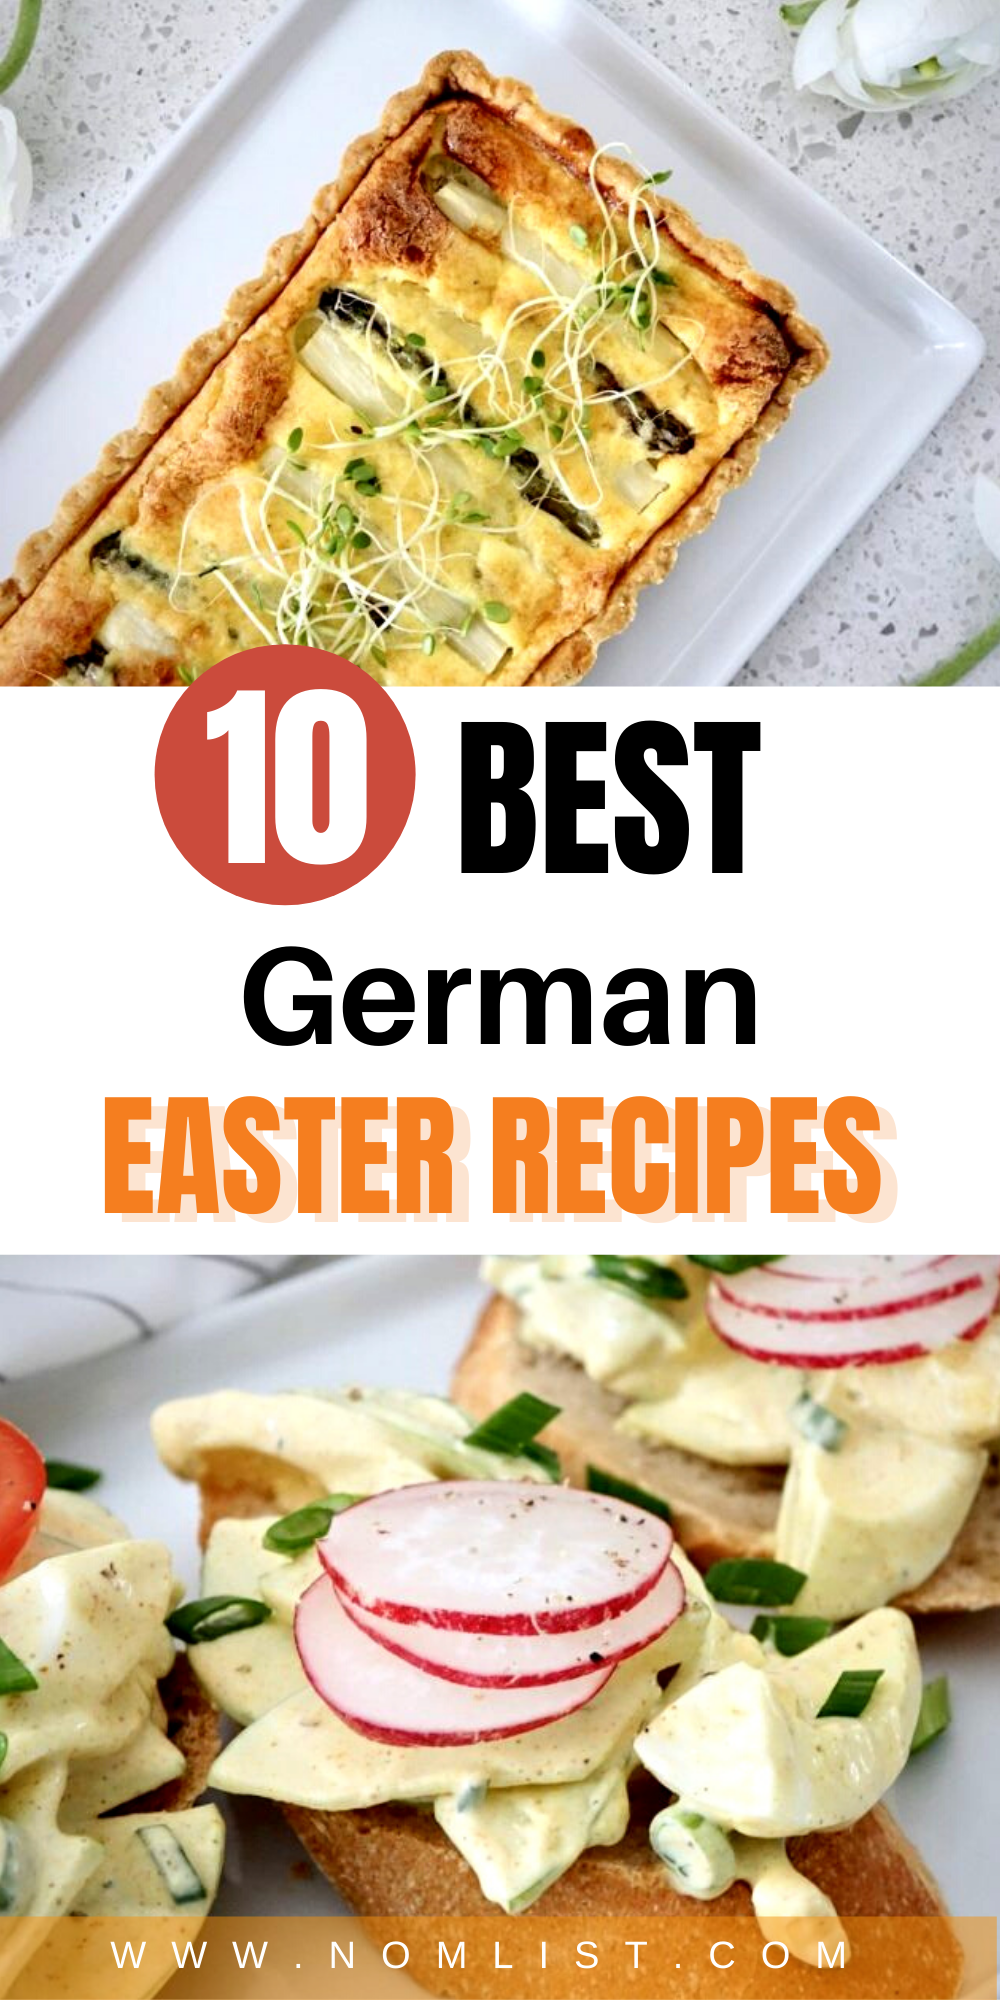 It's time to celebrate Easter with a new kind of cuisine. These delicious German Easter Recipes are a great way to please the whole family with a new twist. You can even make them any time of the year. If you love pastries, baked goods, and eggs, you need to check out the Best German Easter Recipes.